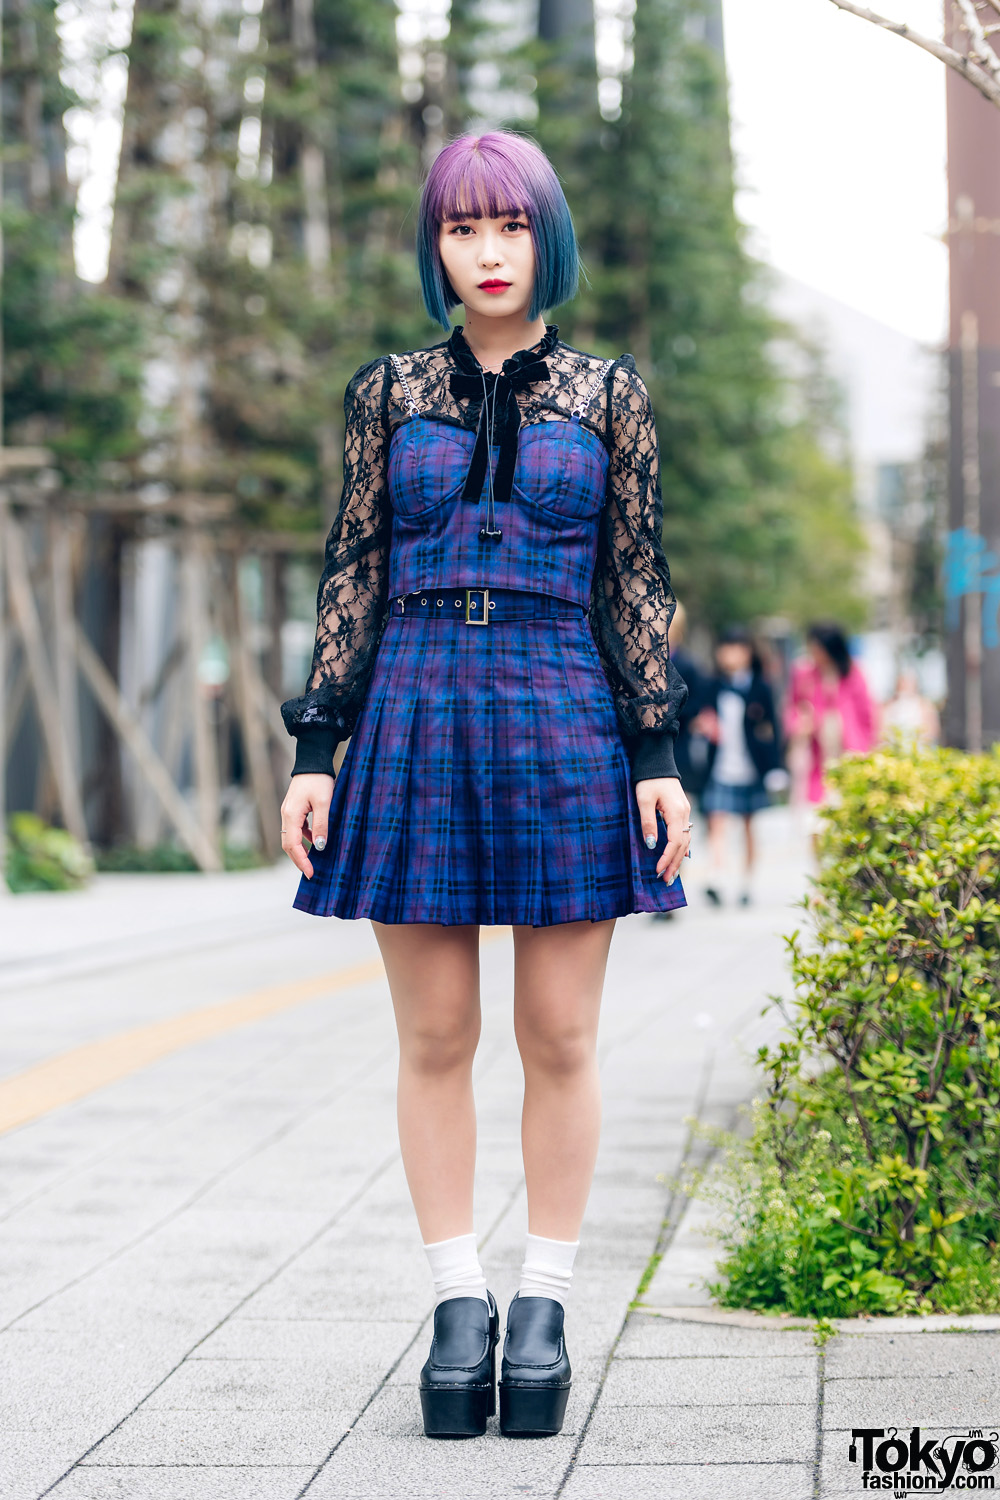 Tokyo Streetwear Style w/ Colorful Bob Hairstyle, Bubbles Lace Top, Plaid Corset Top, Pleated Skirt & Platform Heels